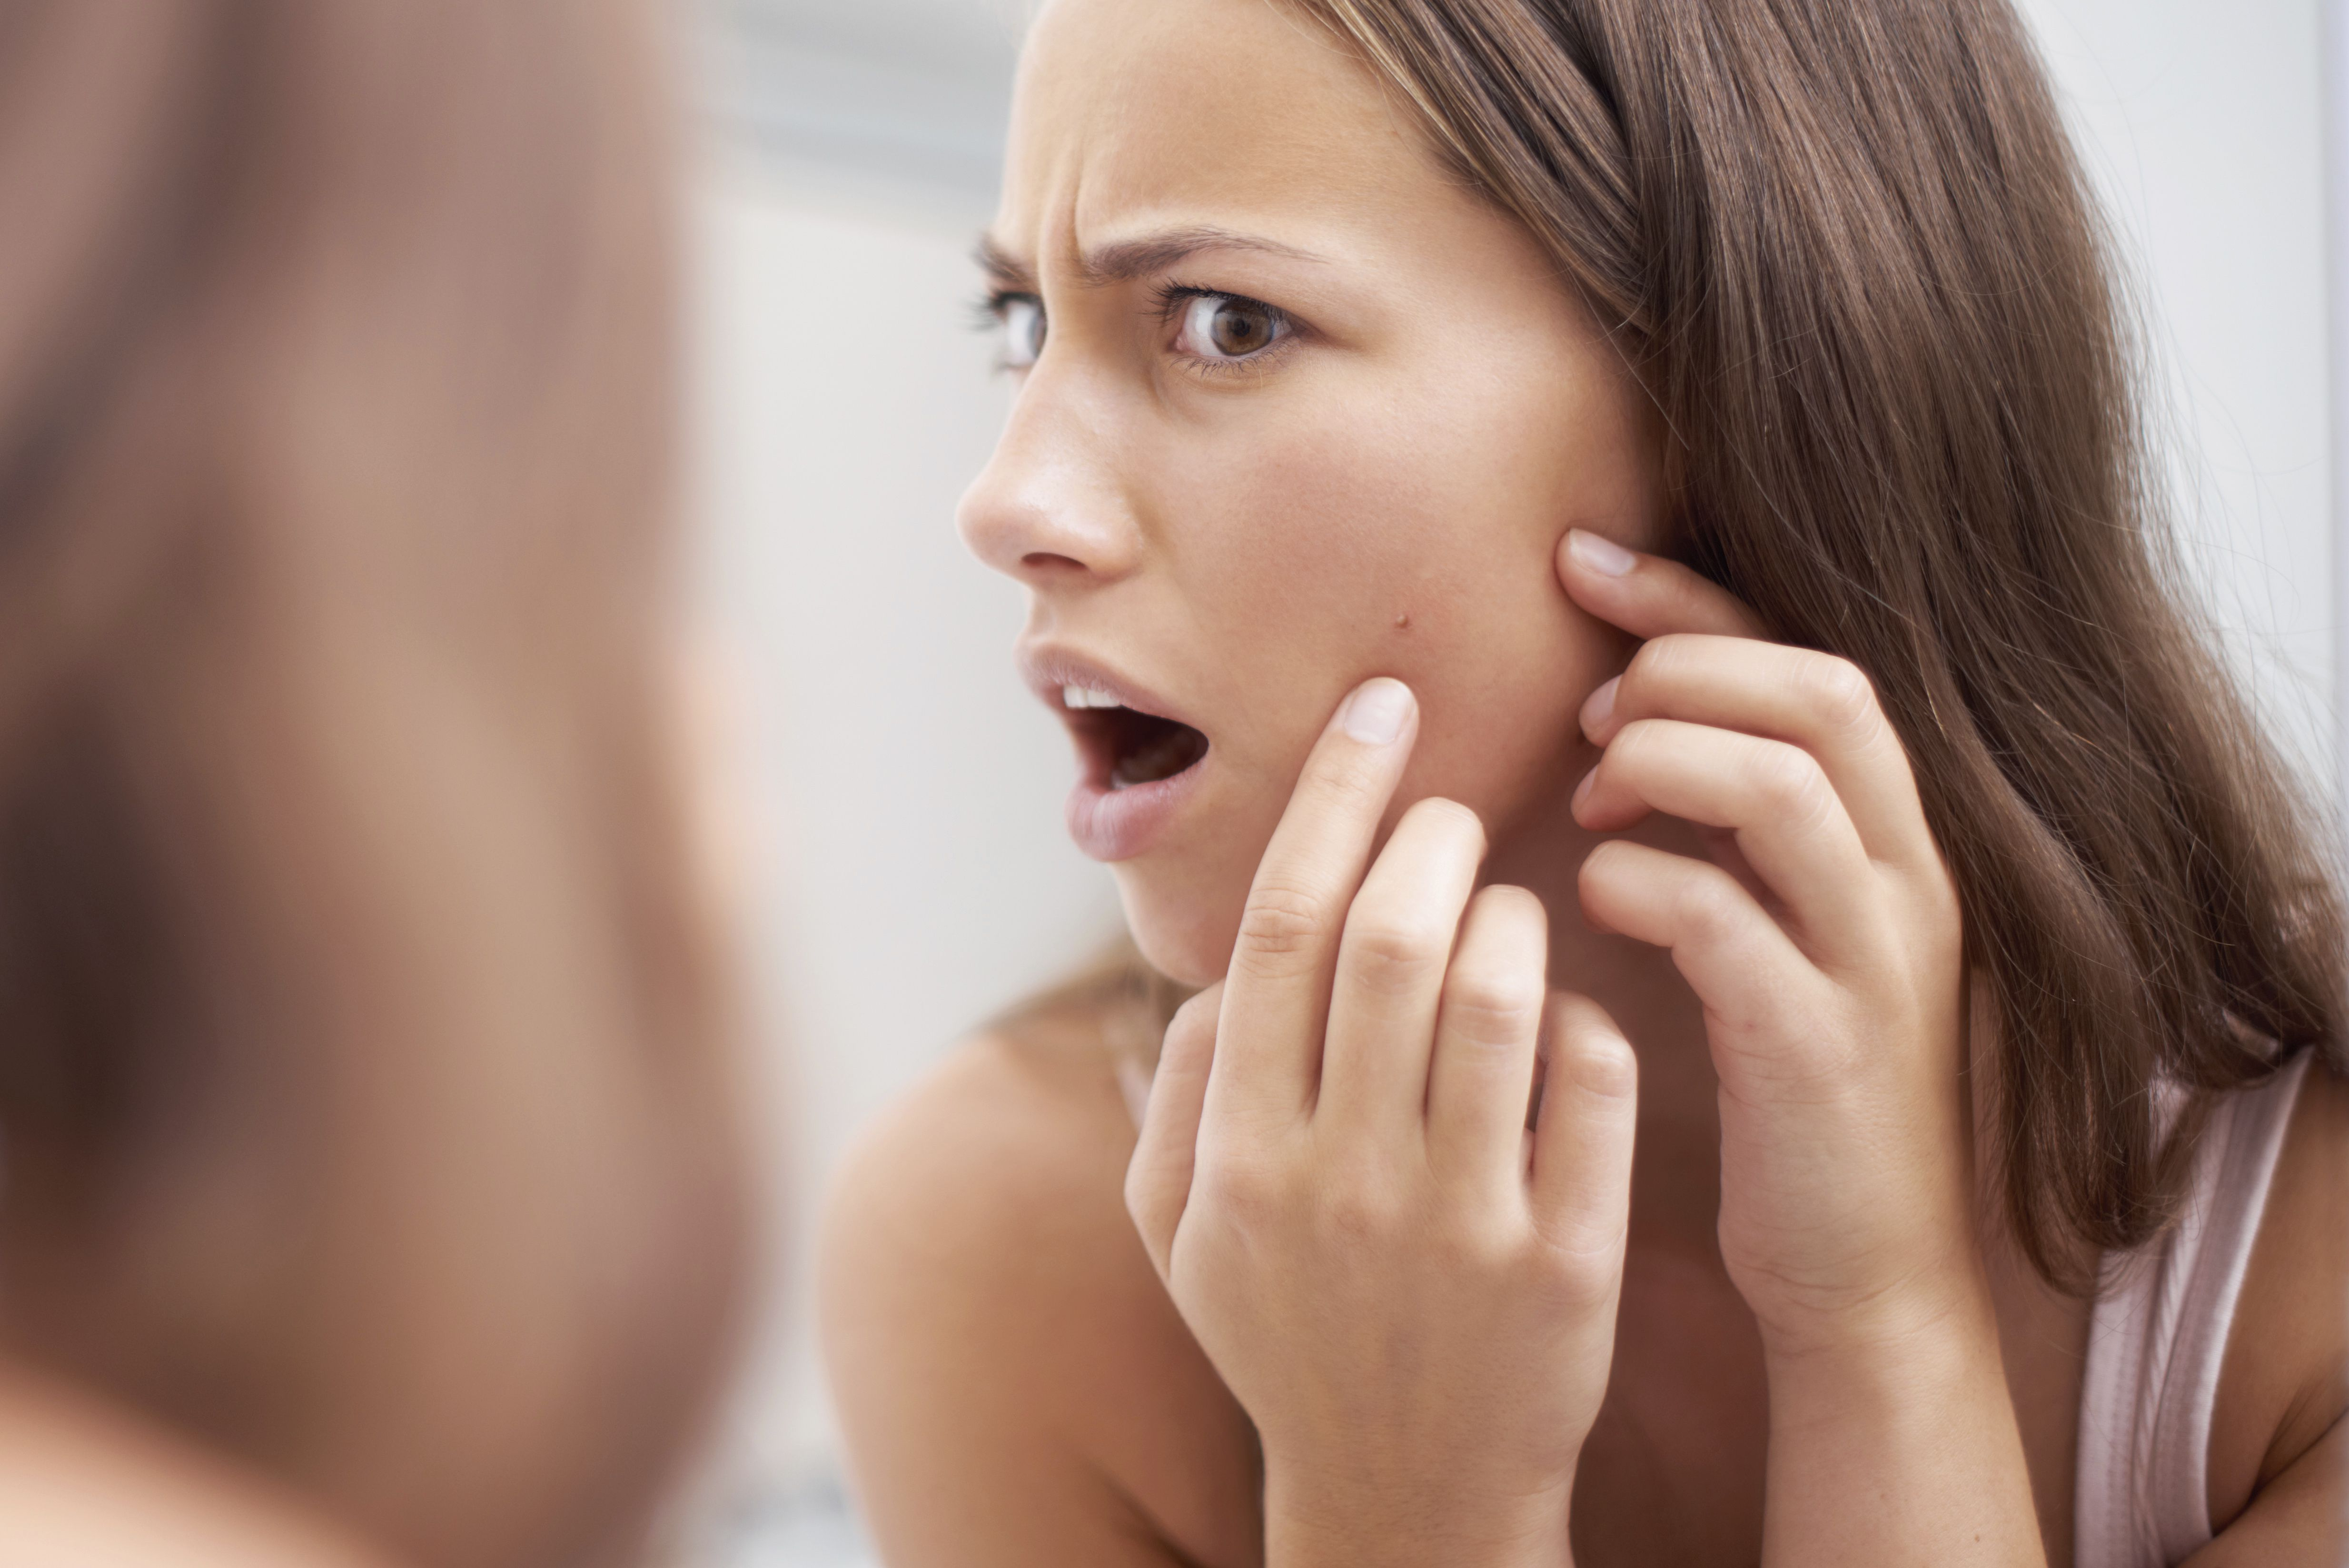 When to See a Dermatologist for Your Acne